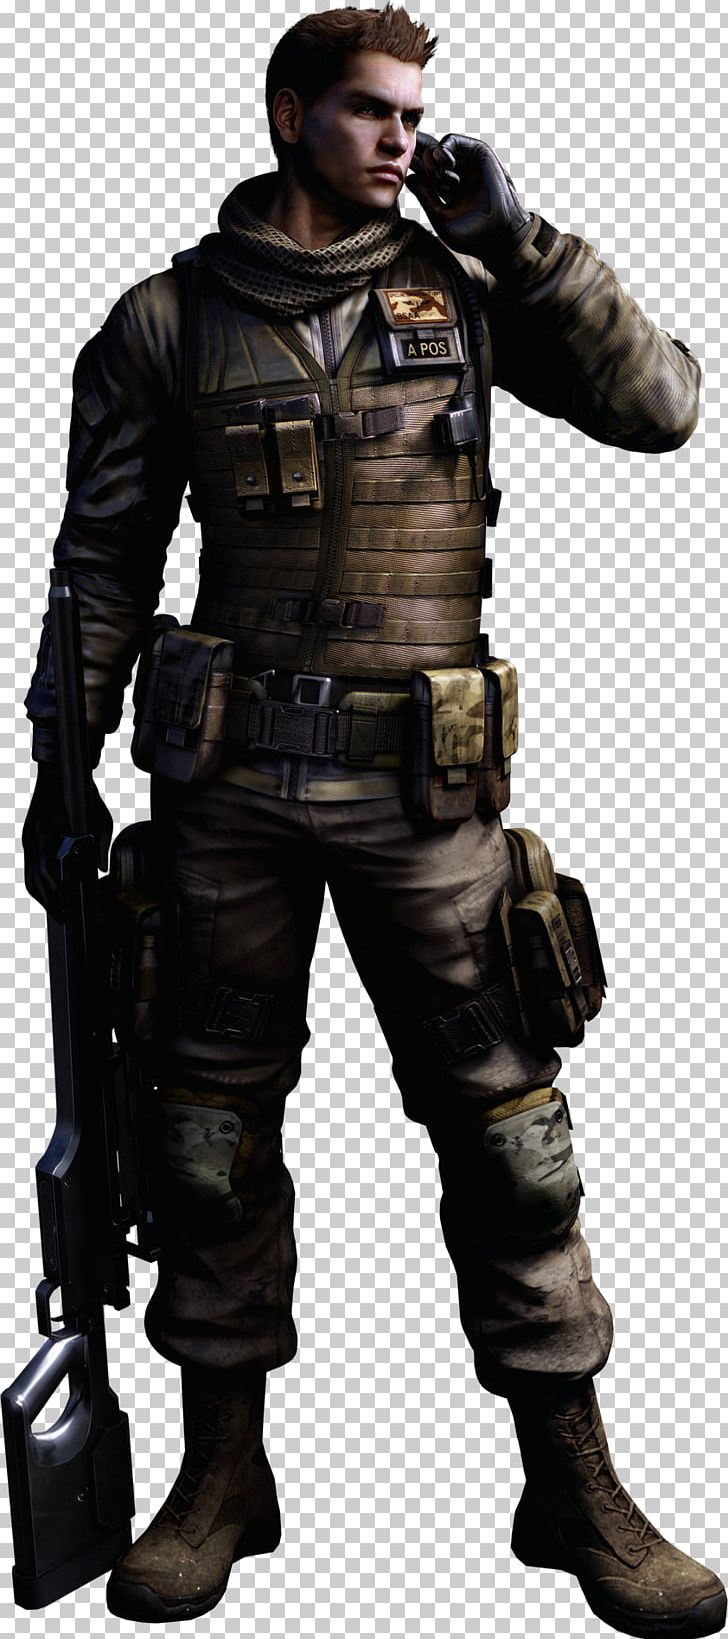 Resident Evil 6 Chris Redfield Leon S Kennedy Claire Redfield Png Clipart Army Art Concept Art